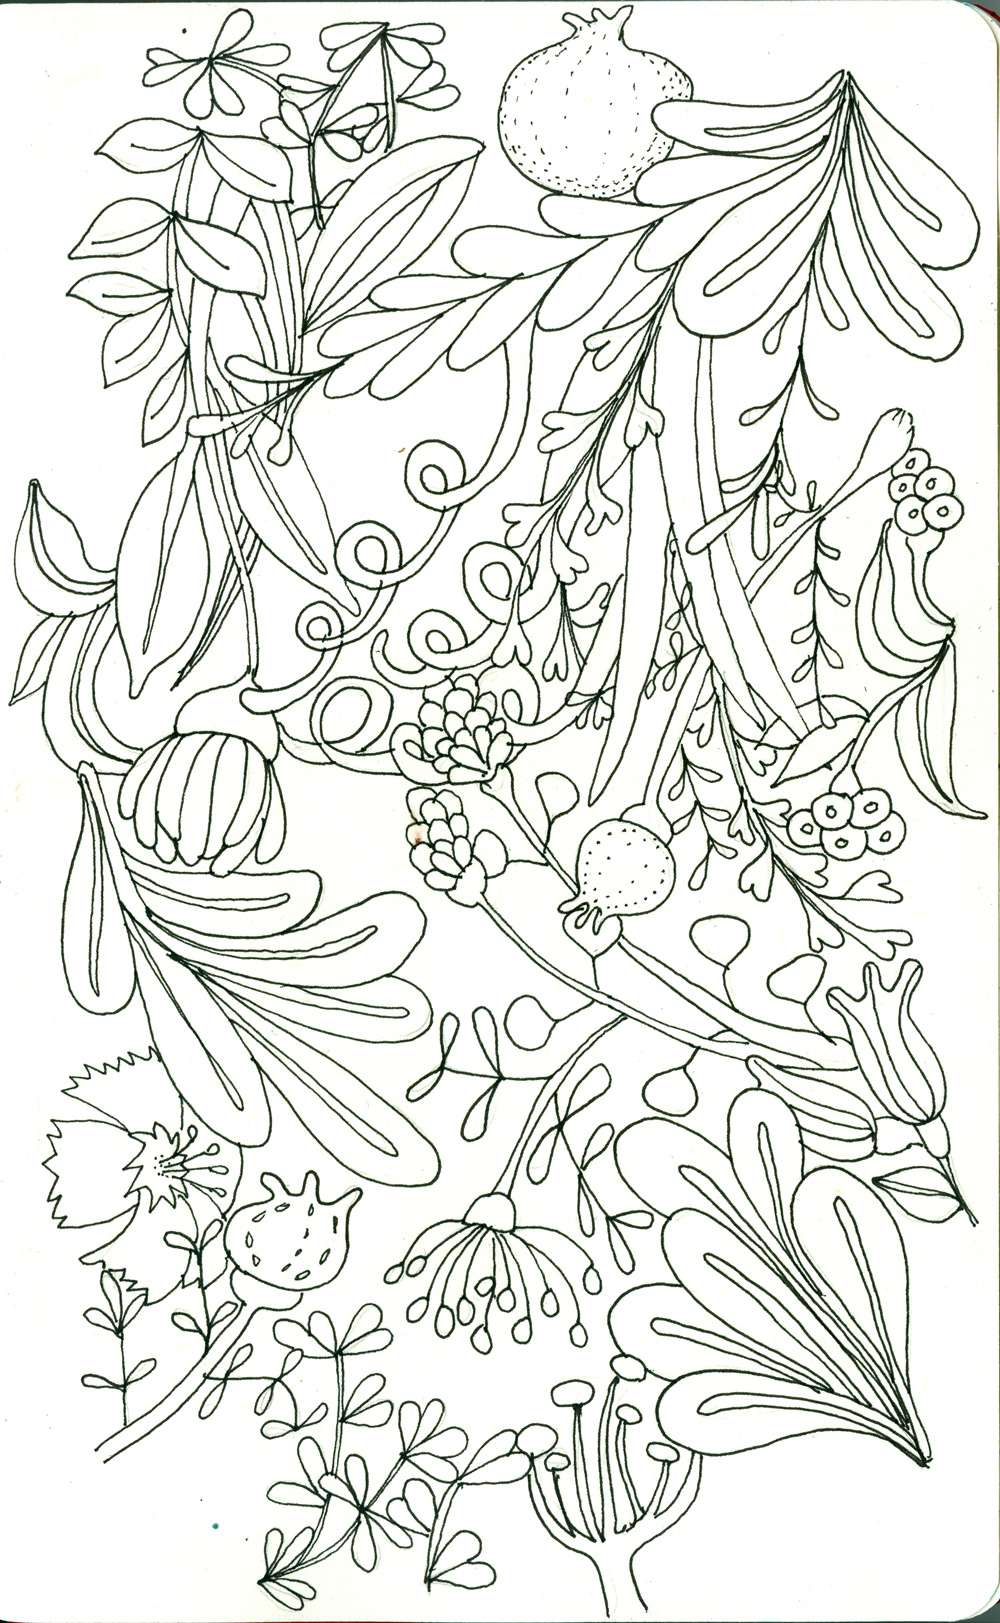 venus-flowers-sketch